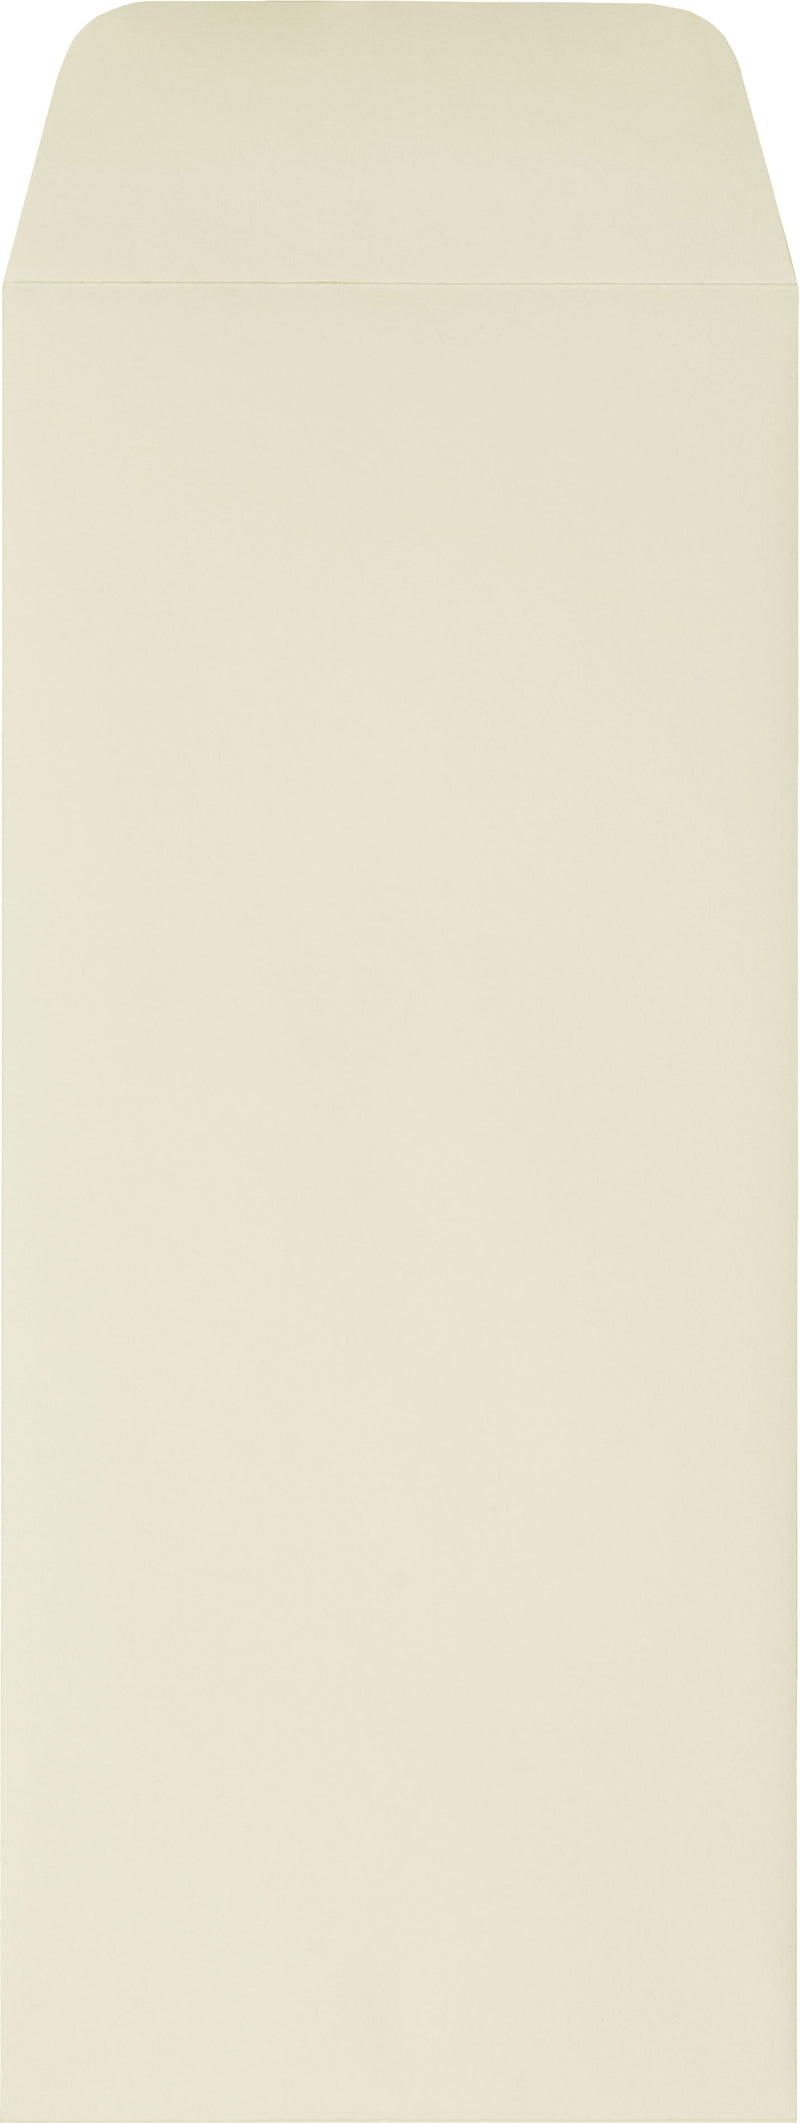 products/no10_policy_classic_natural_cream_solid_envelopes_back.jpg